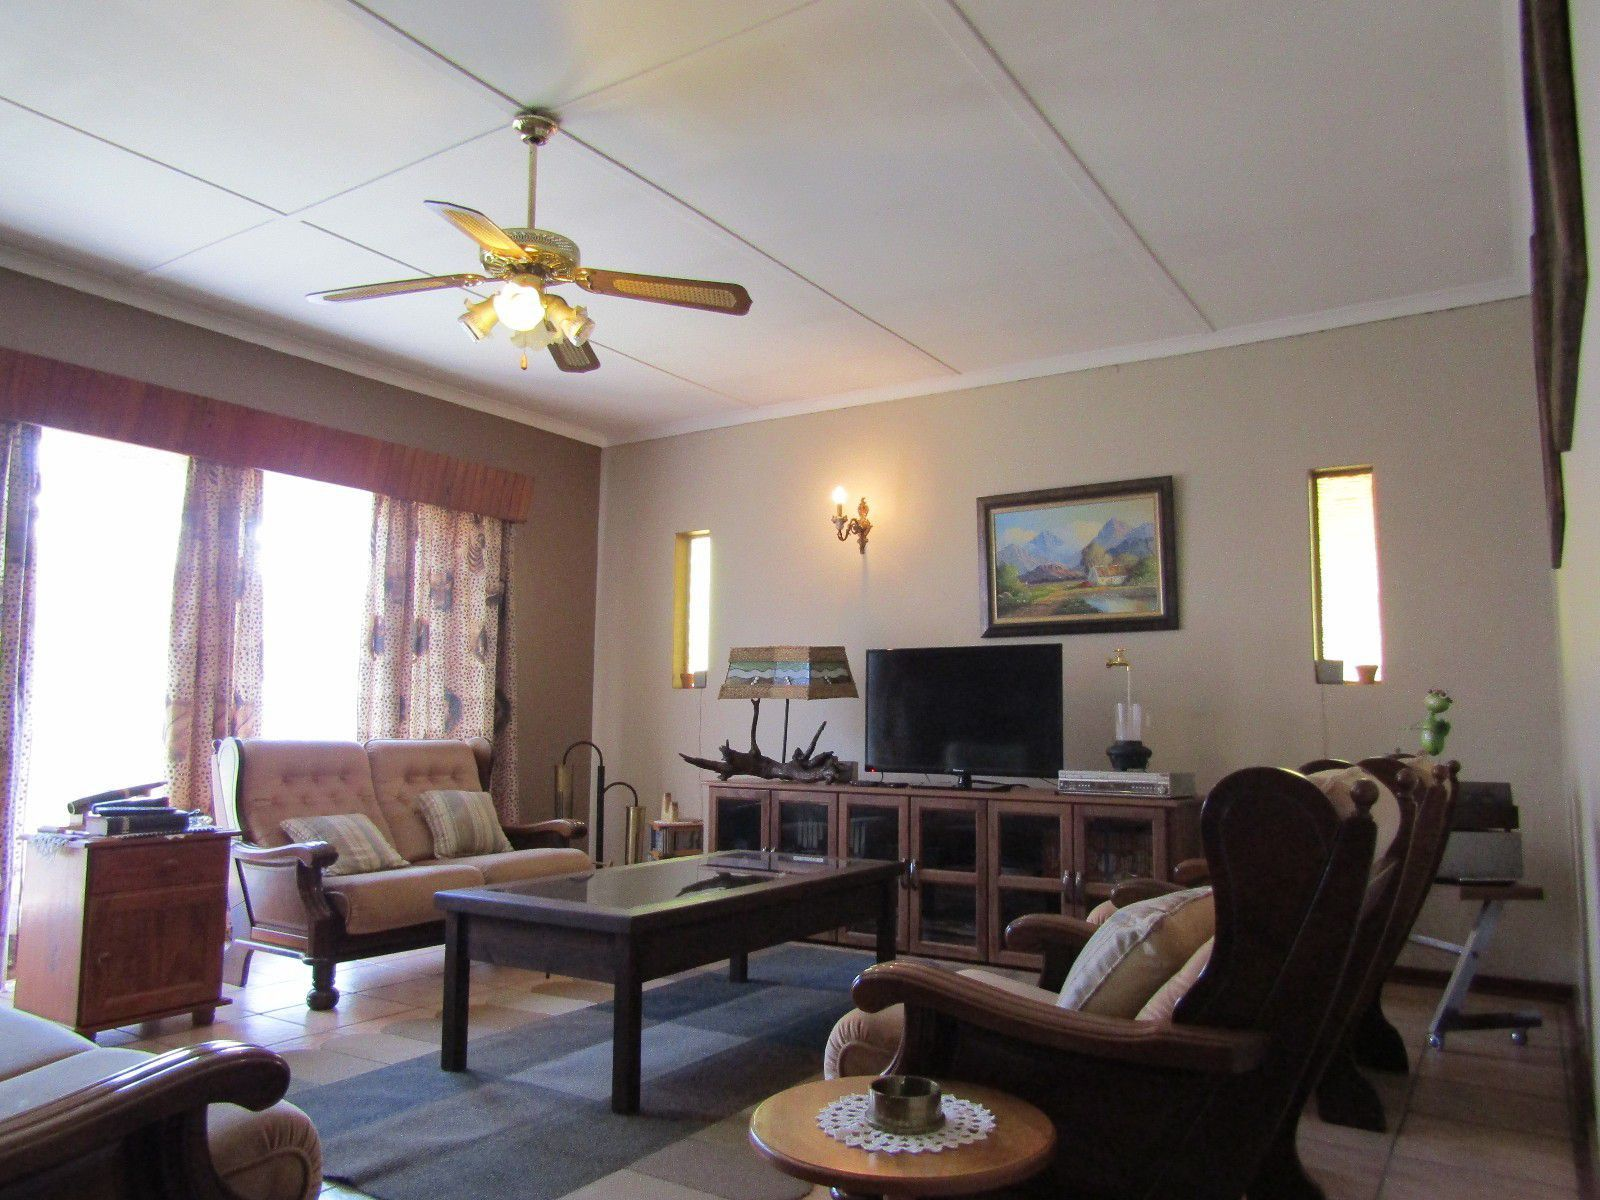 Potchefstroom Central property for sale. Ref No: 13444543. Picture no 2